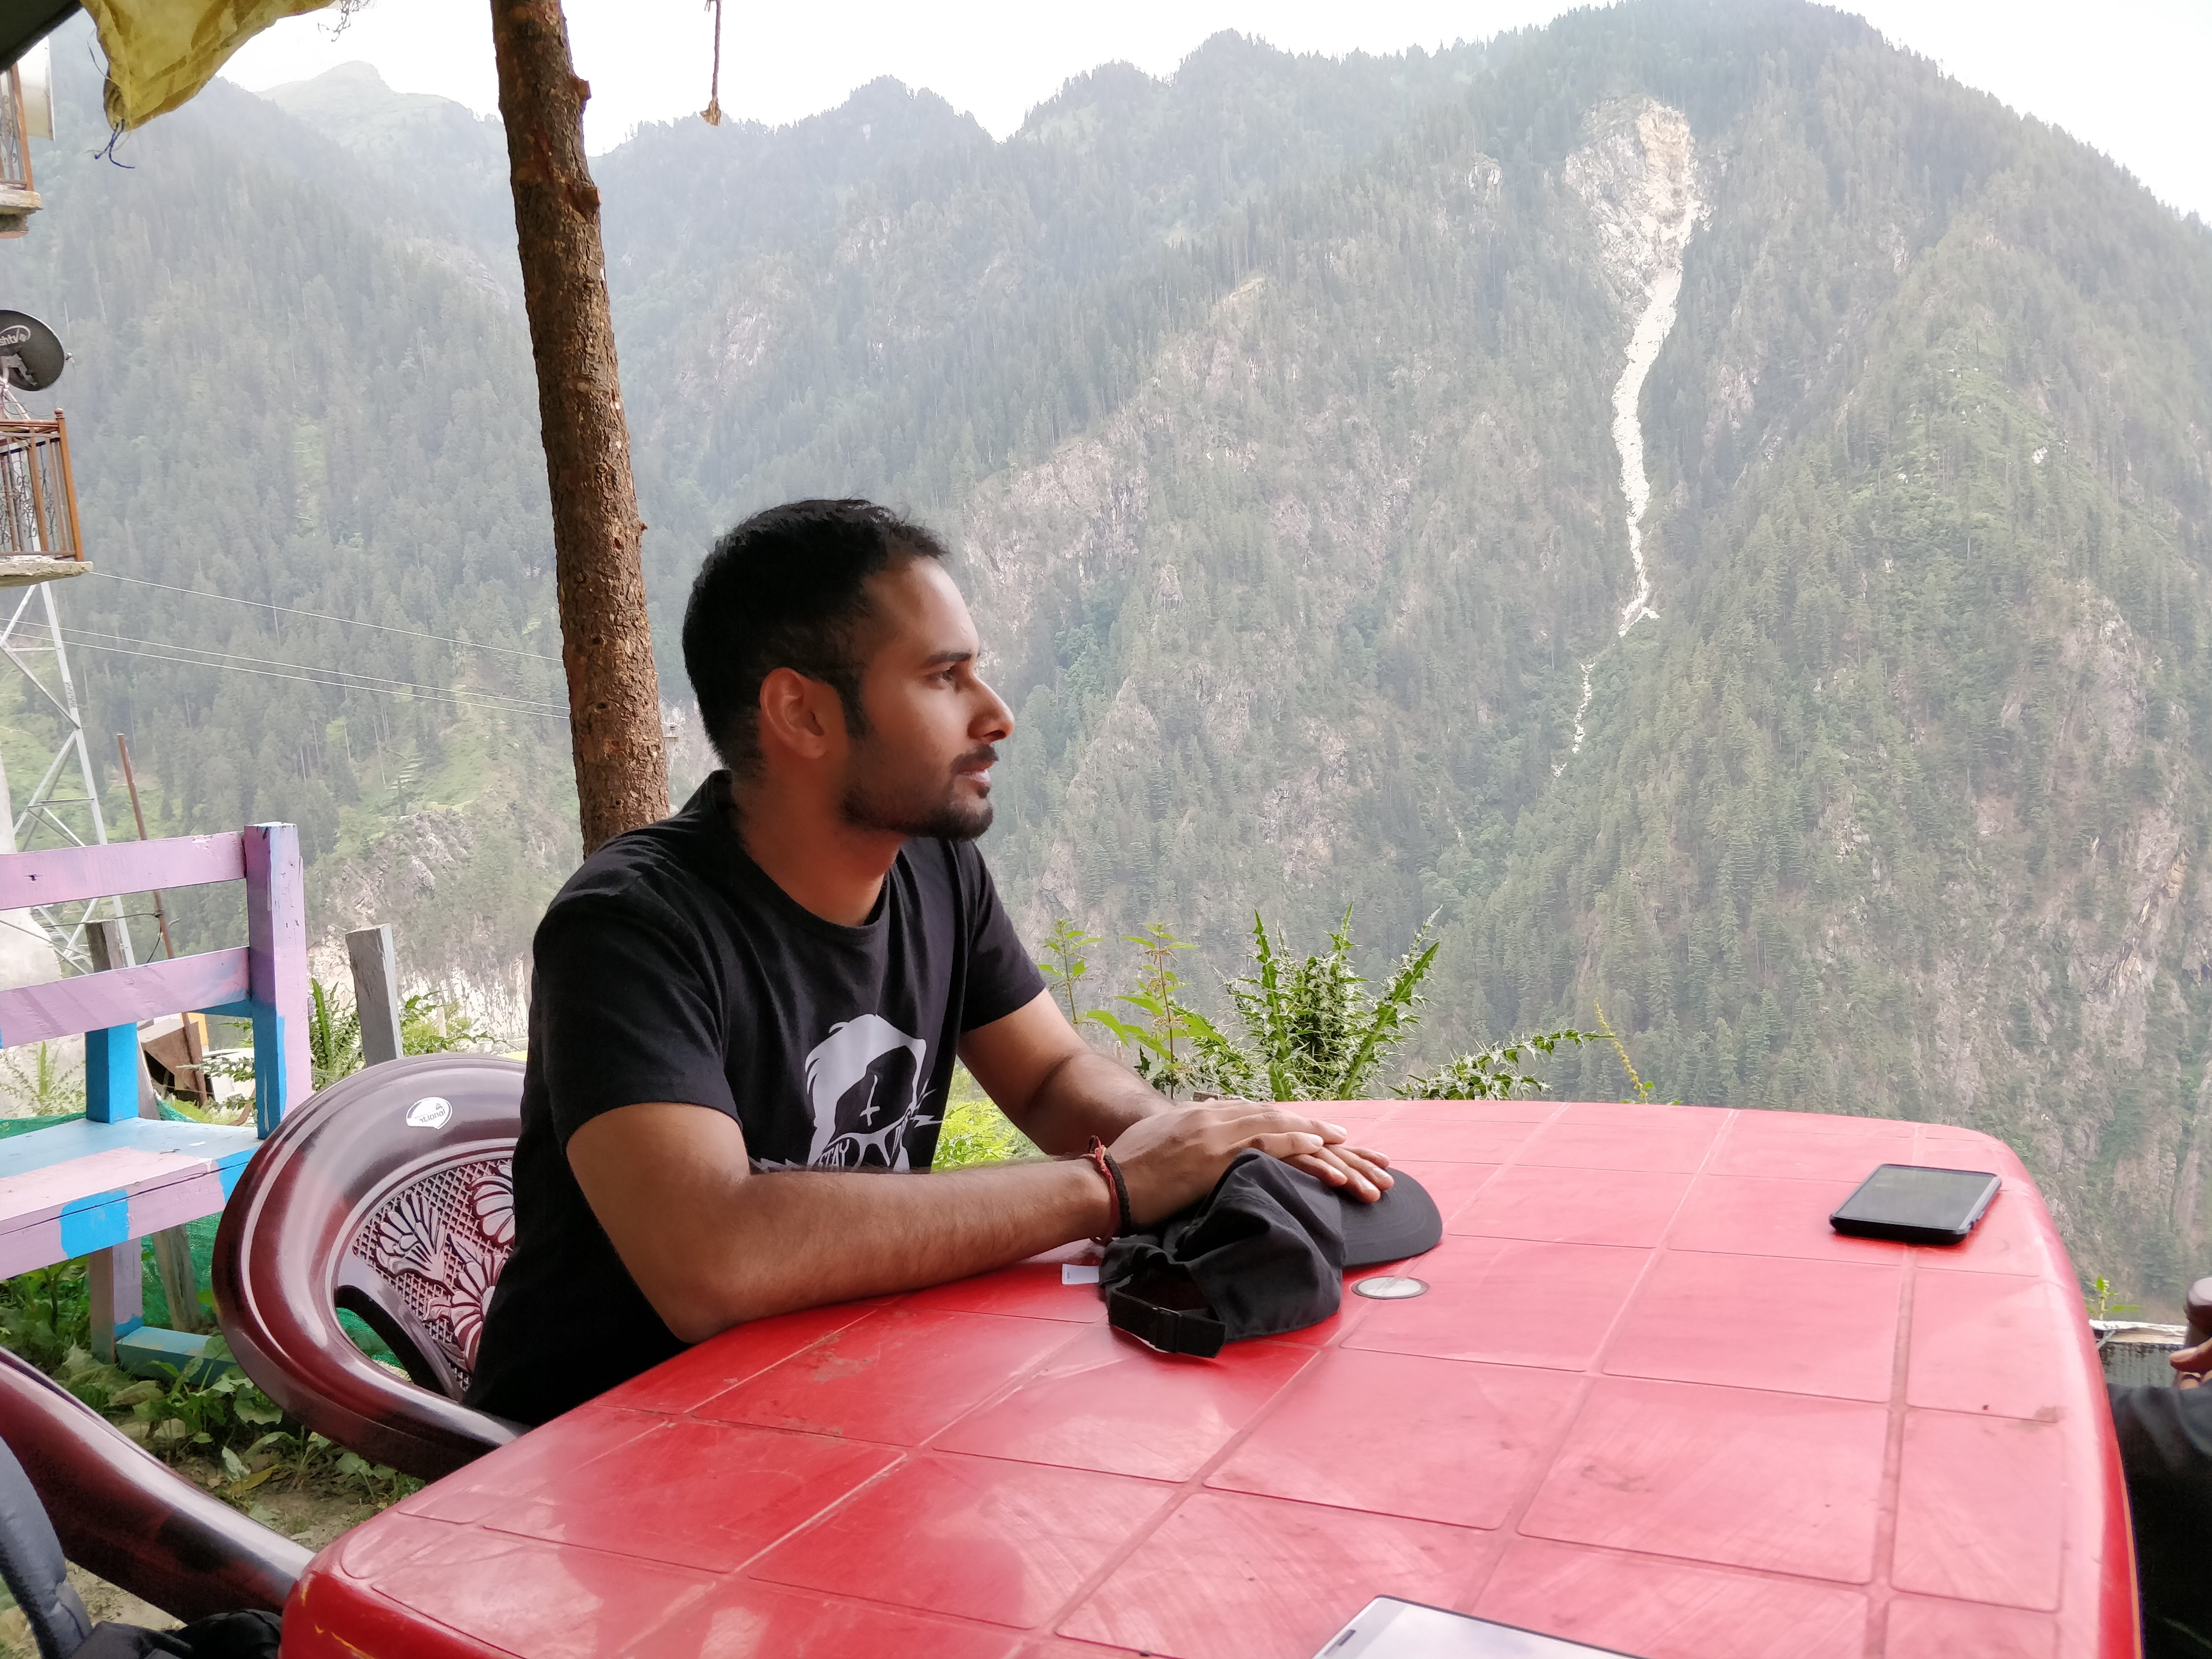 Cafe at the top in Malana Village